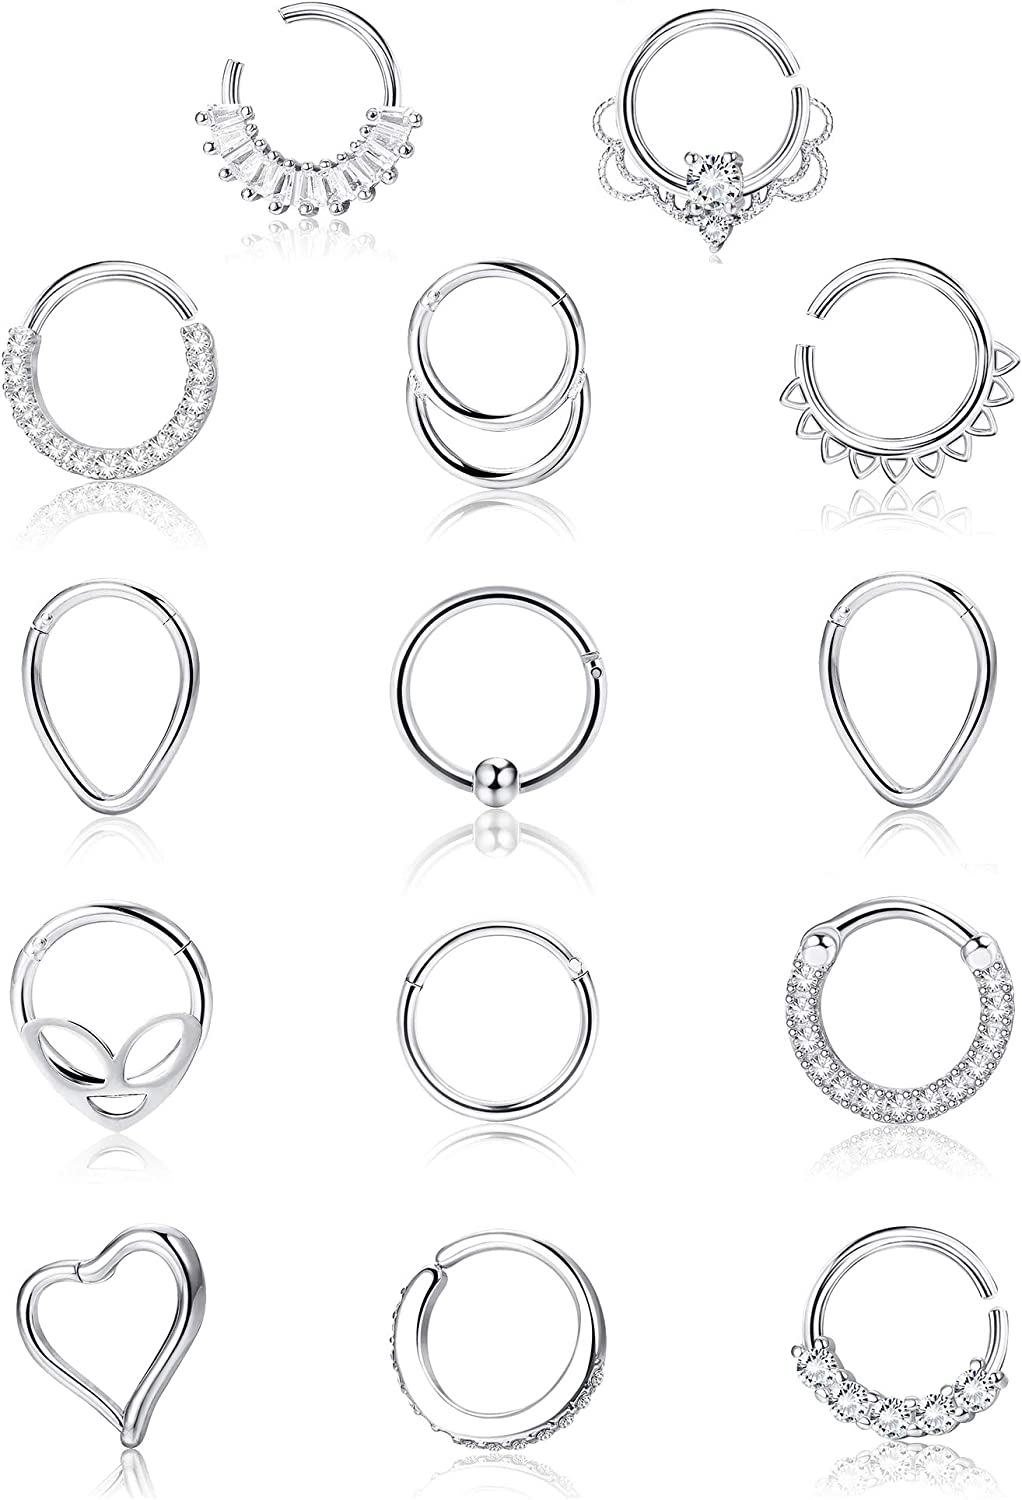 Jstyle 14Pcs 16G Stainless Steel Clicker Hinged Segment gift Rings Overseas parallel import regular item Ca